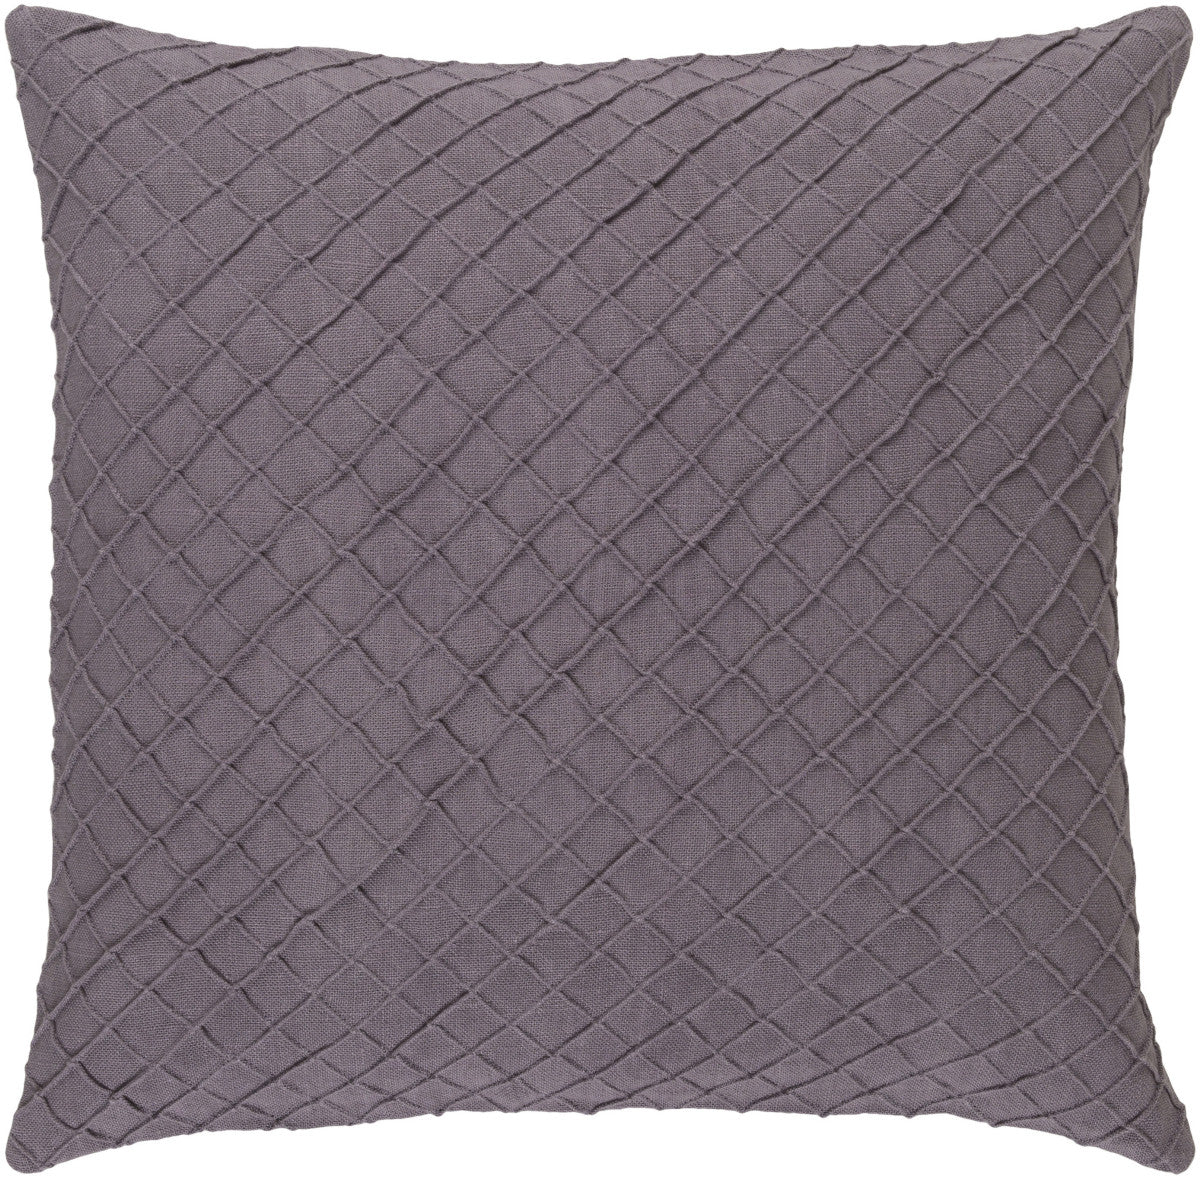 Surya Wright WR006 Pillow